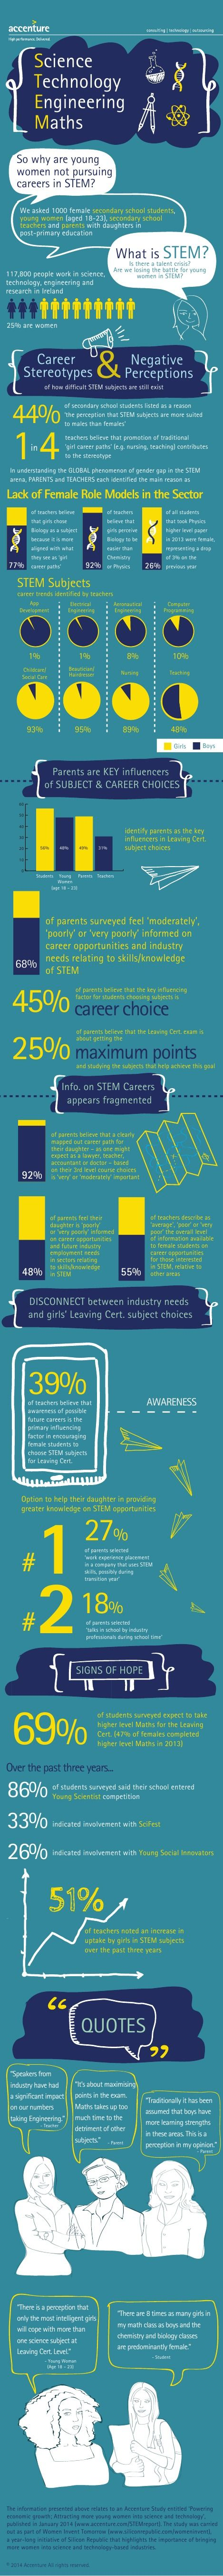 New research looks at how we attract more young women into science and technology (infographic)